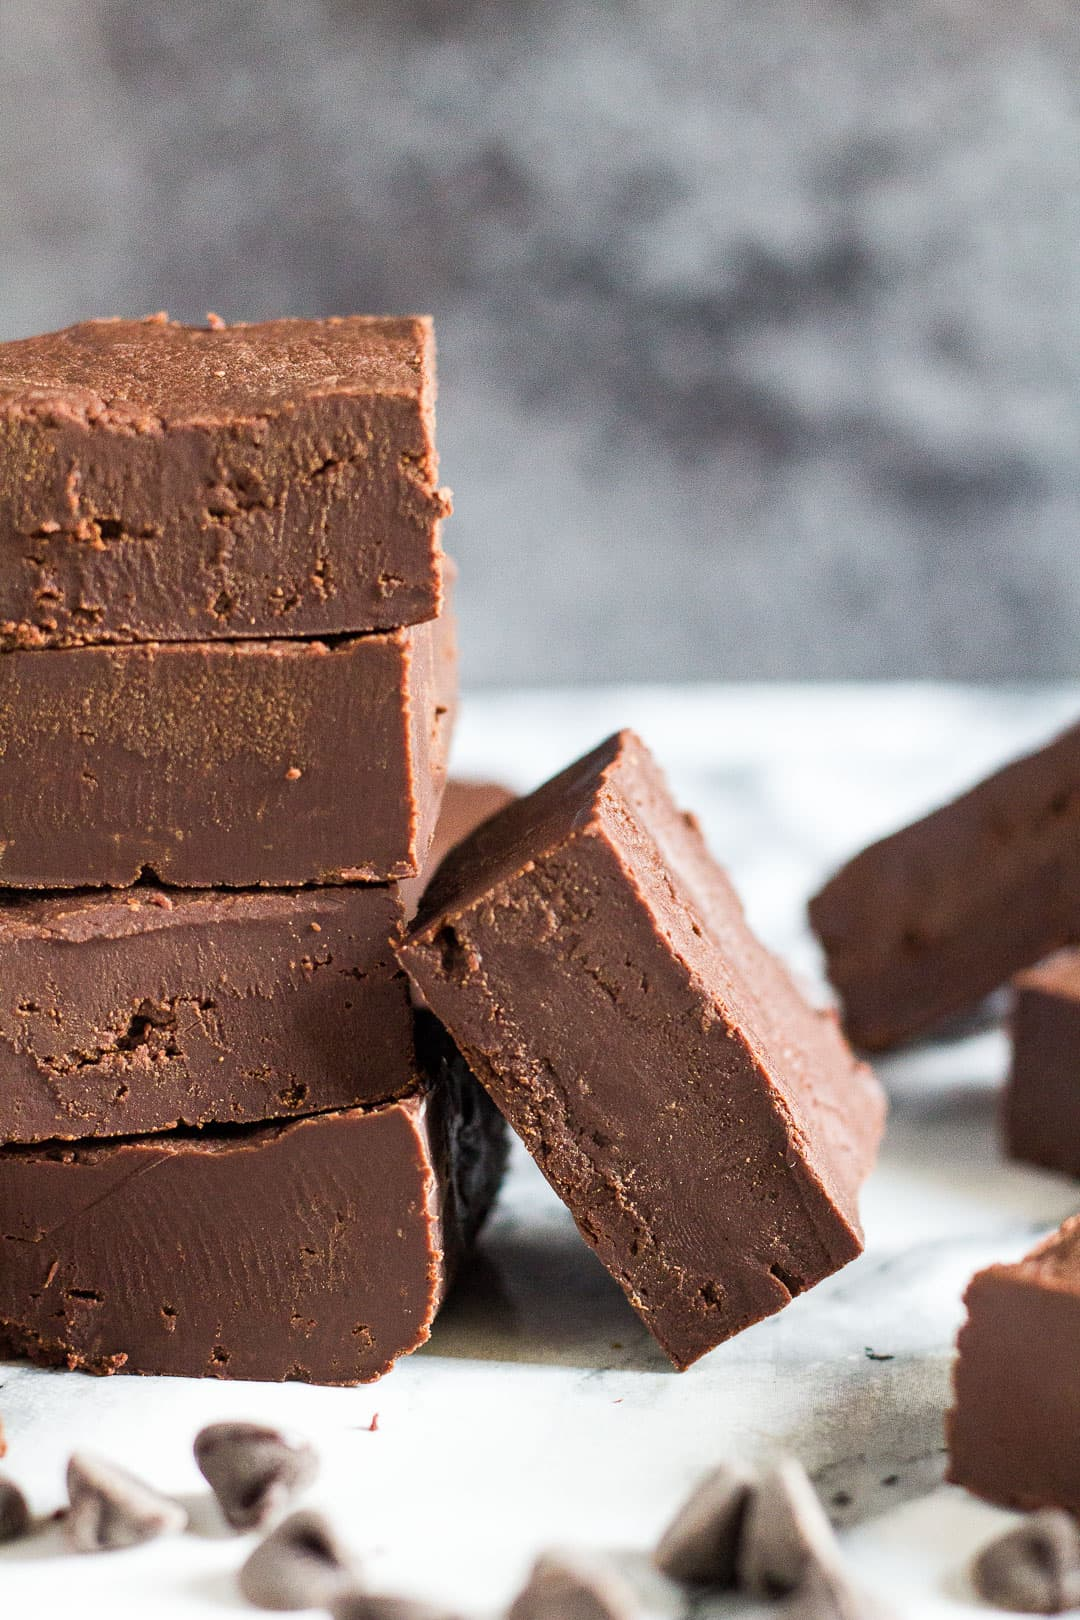 A stack of four pieces of thick chocolate fudge pieces with one piece leaning up against it.